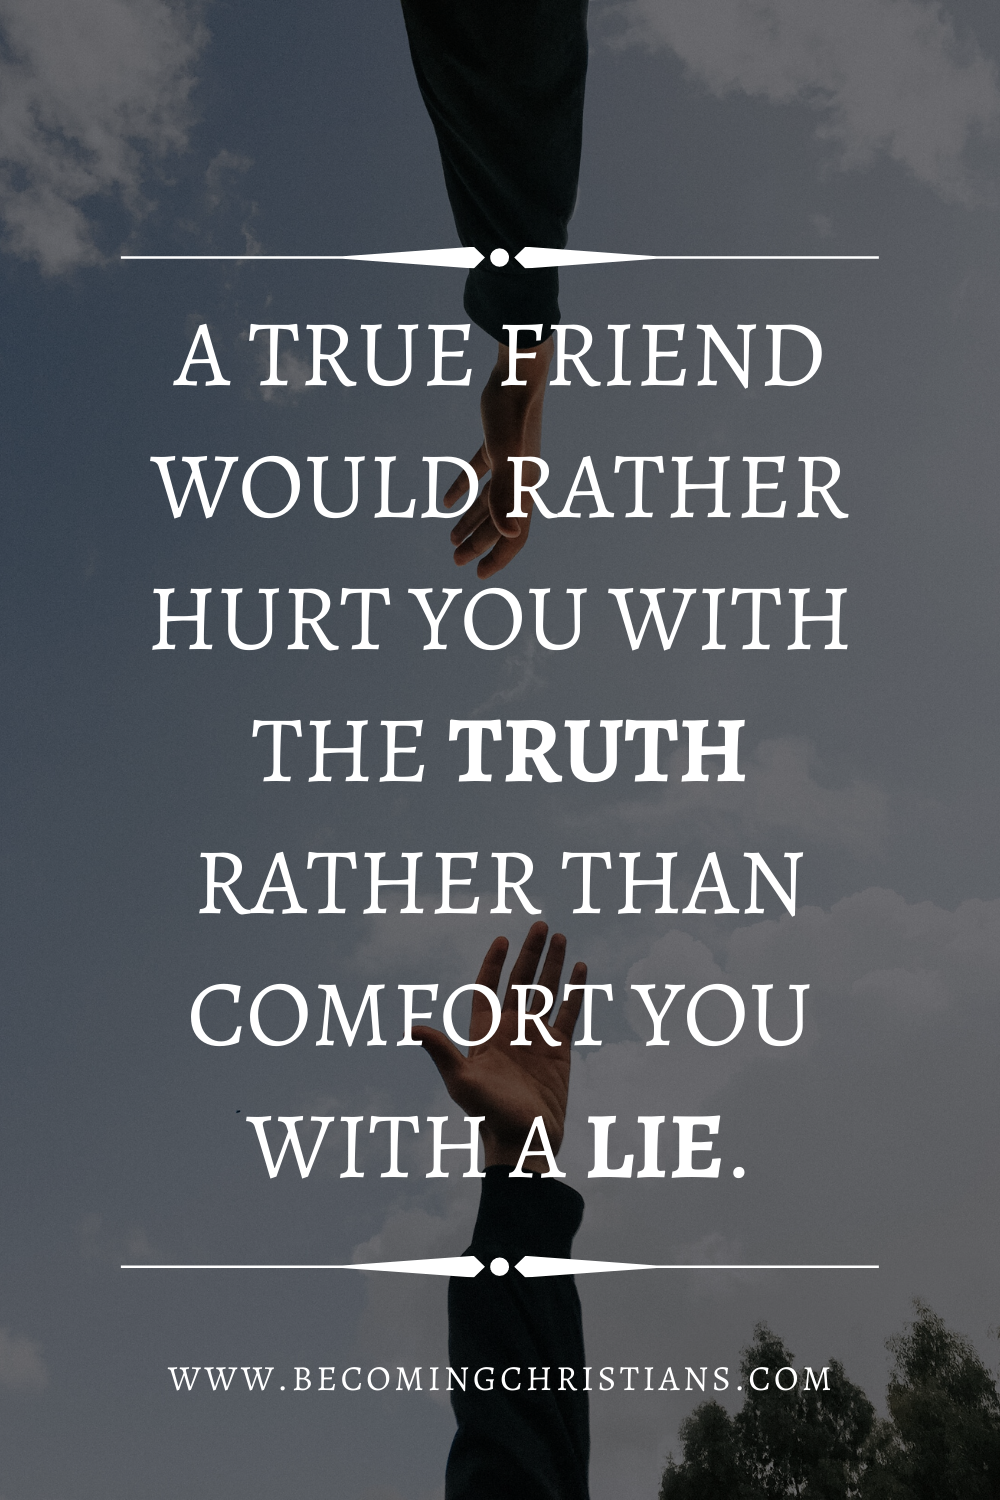 What Does The Bible Say About Relationships With Friends